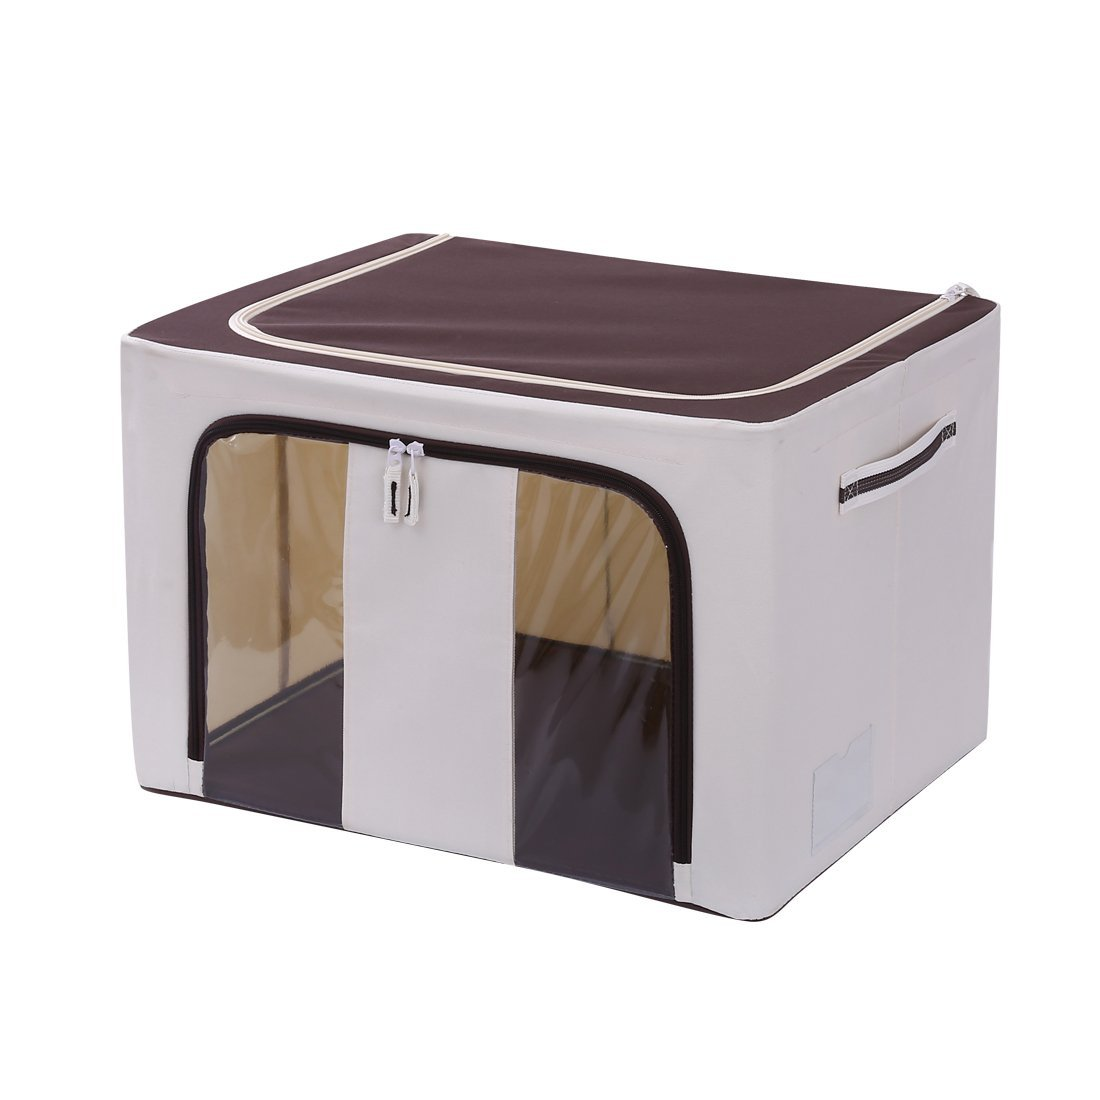 FUMOMEK Storage Bin Box with Lid & Dual Handles Foldable Cloth Organizer with Window & Label Holder for Home Closet Office